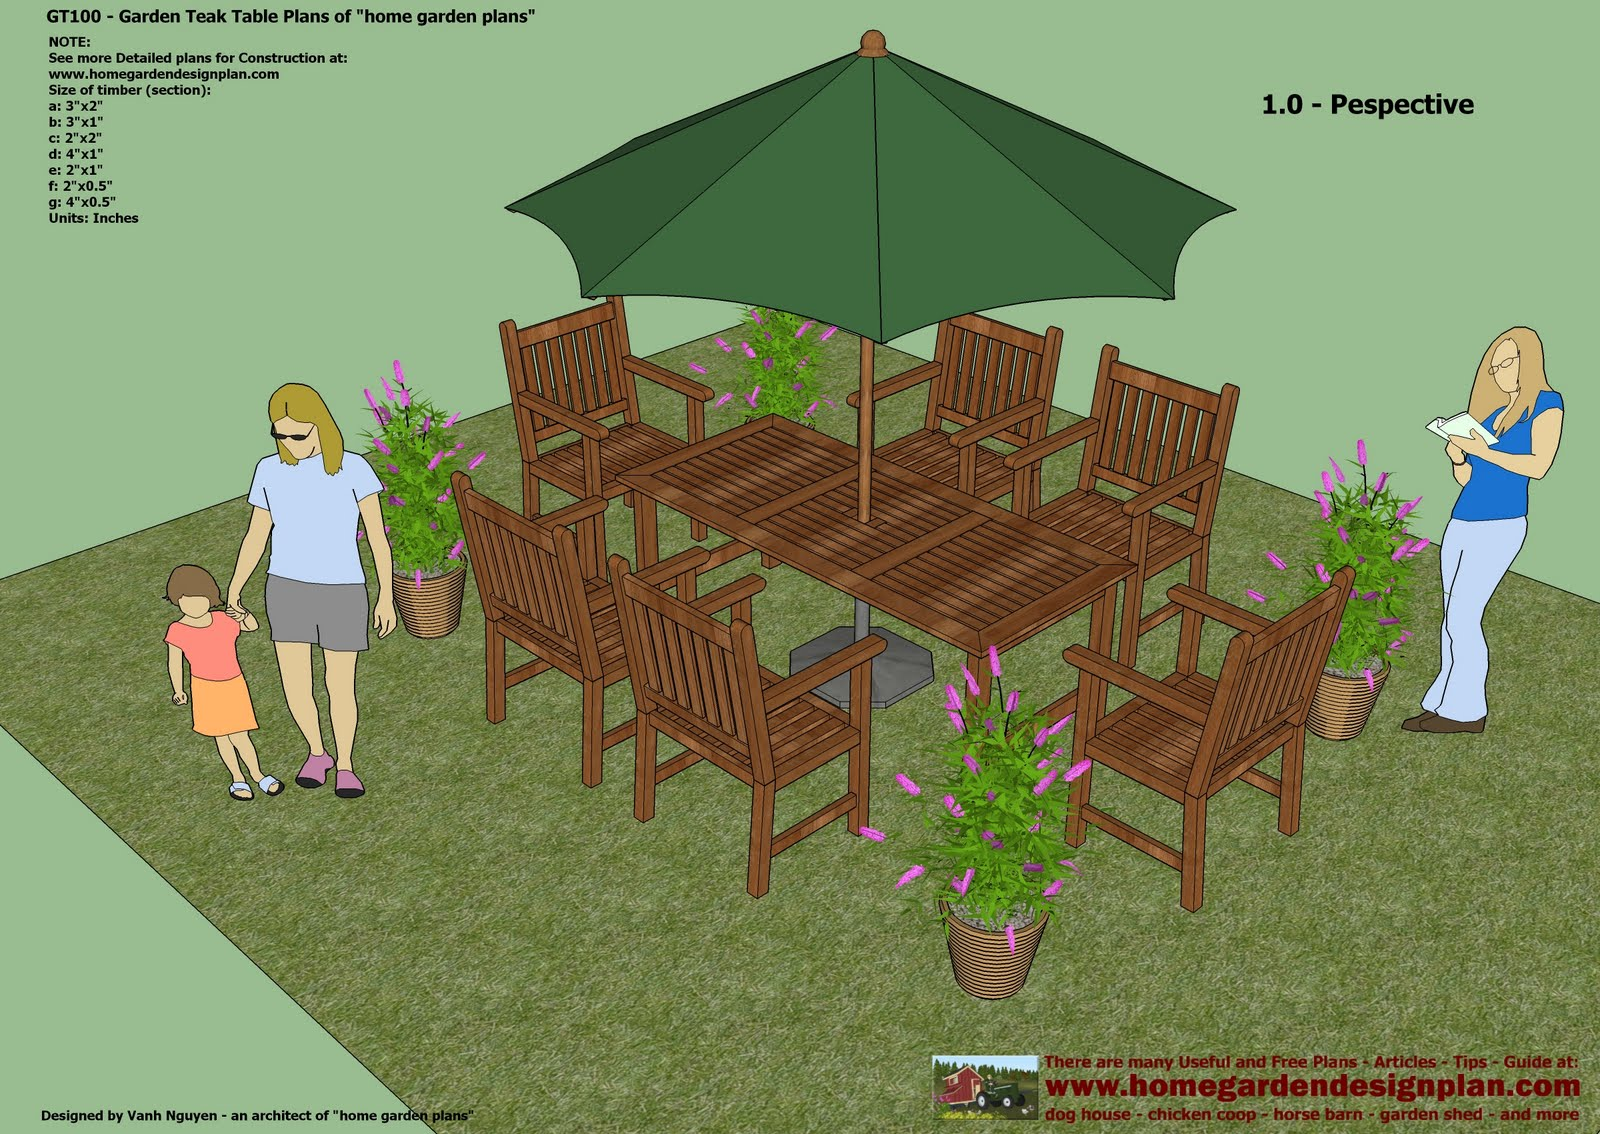 Garden Teak Tables - Woodworking Plans - Outdoor Furniture Plans